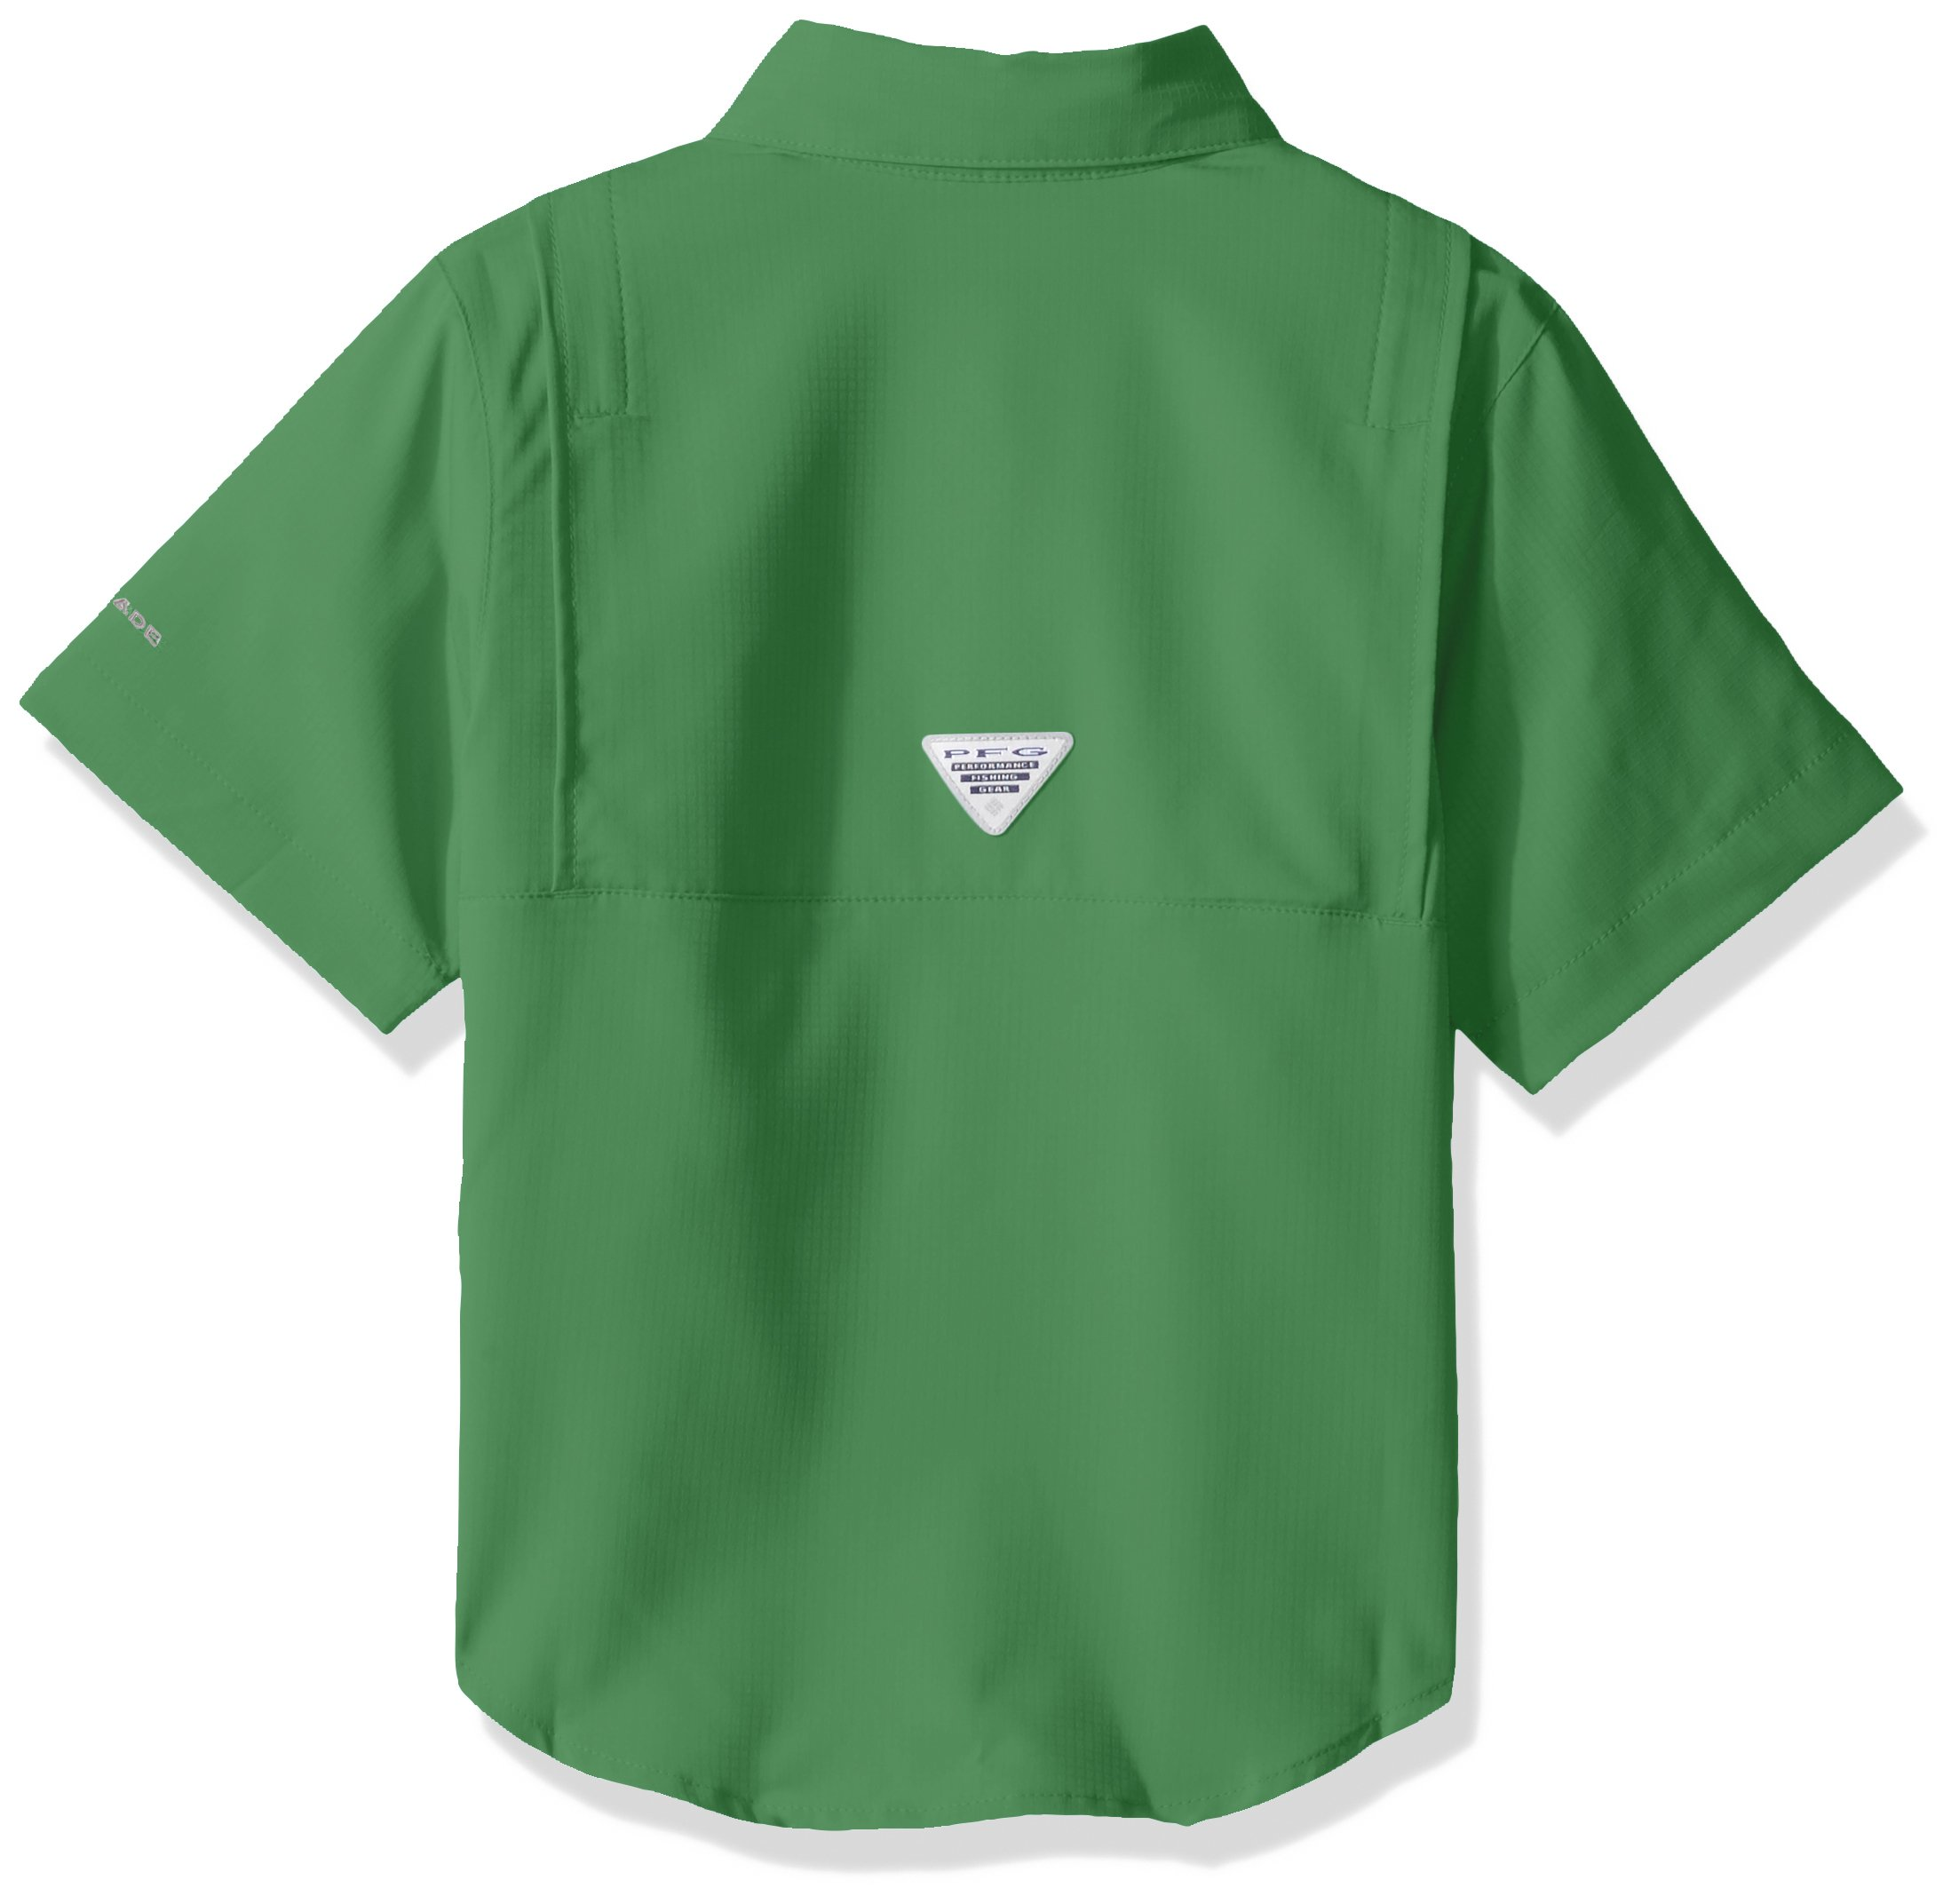 Columbia Boys Tamiami Short Sleeve Shirt, Emerald City, Large by Columbia (Image #2)